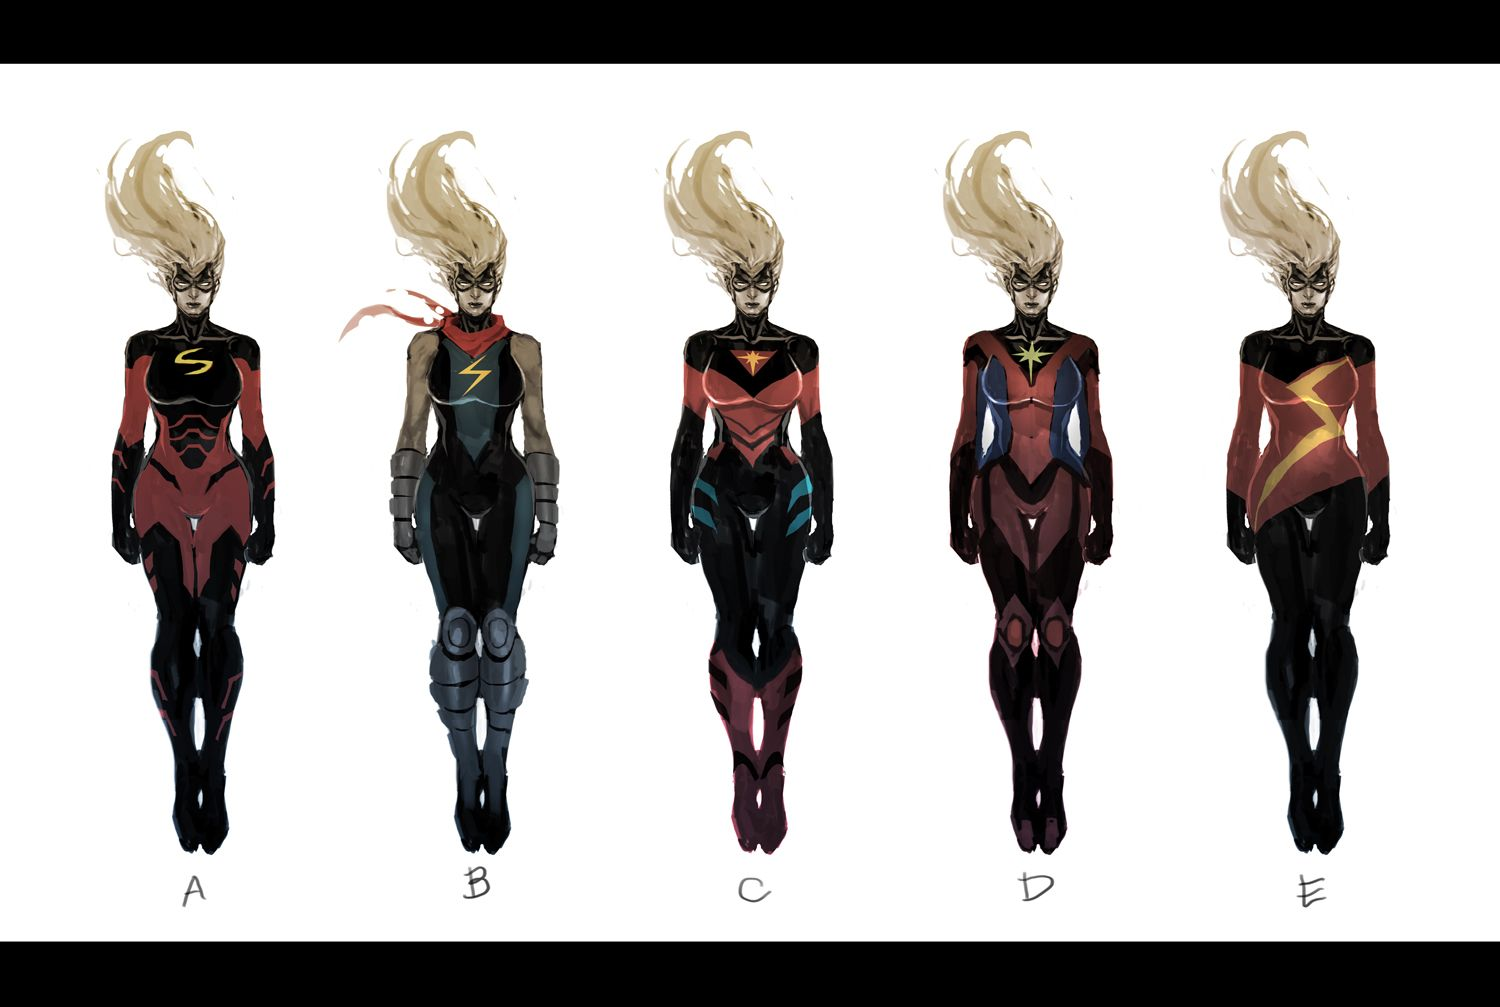 Complex Captain Marvel Costume Marvel Concept Art Marvel Girls Captain marvel costume 2019 avengers endgame cosplay carol danvers red woman fashion full set on sale now! captain marvel costume marvel concept